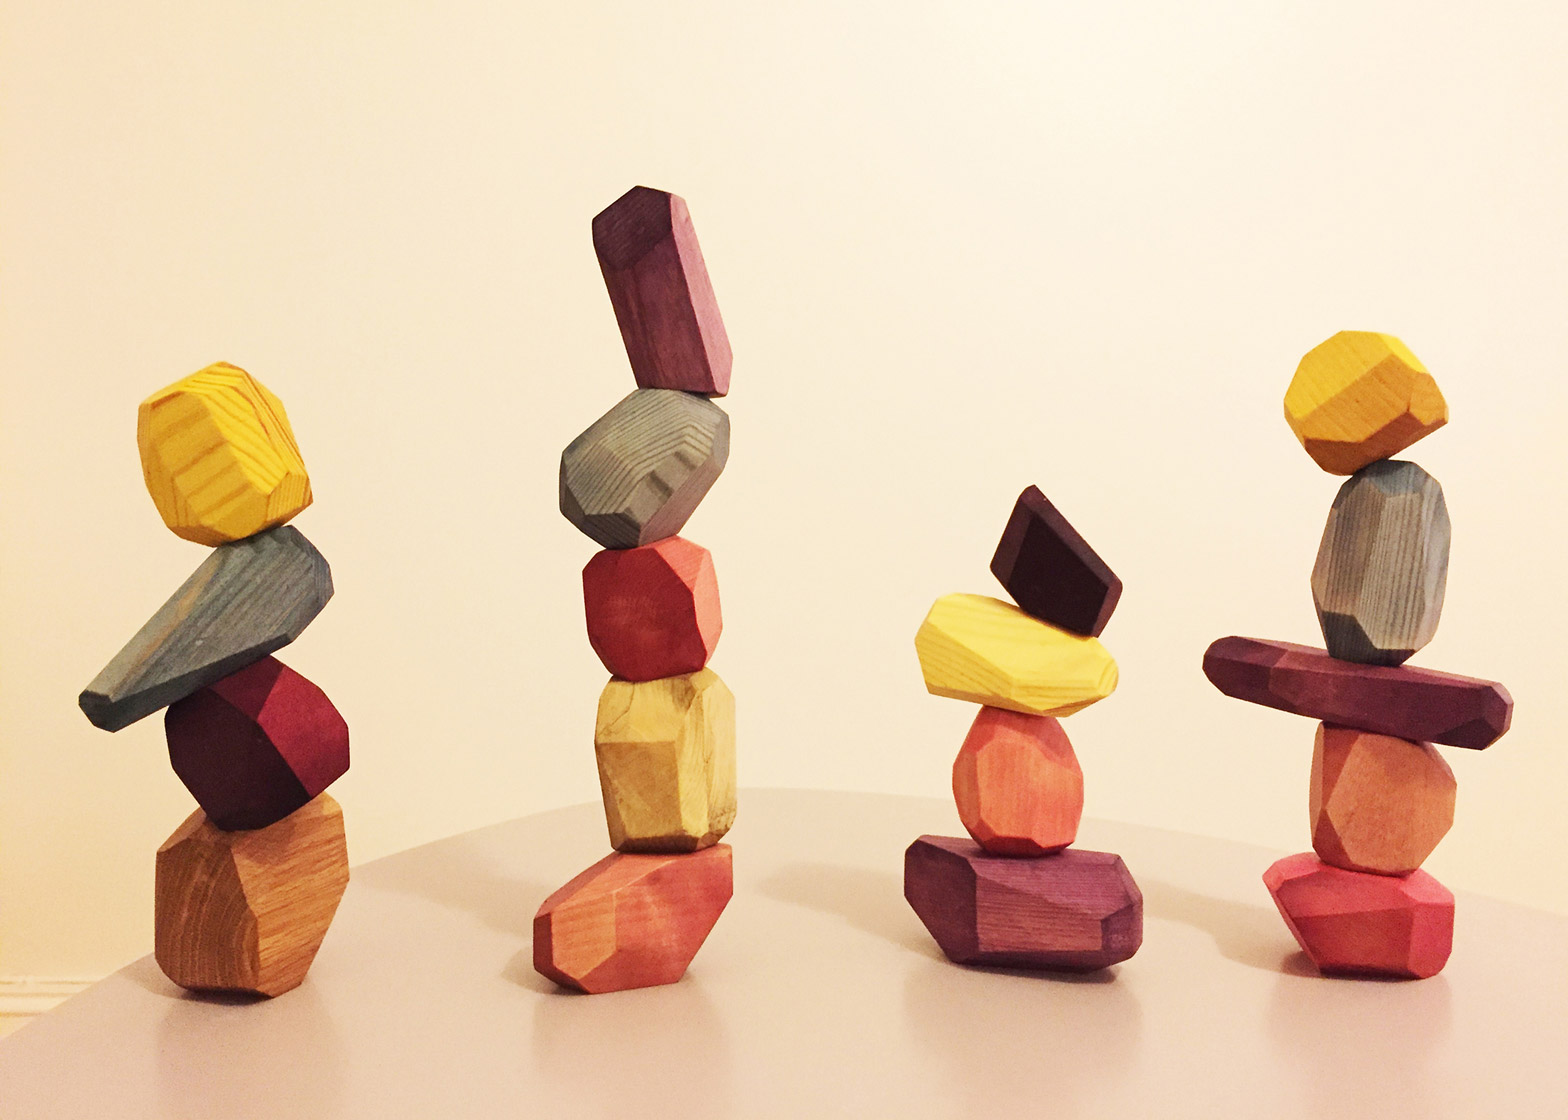 Snego blocks are made from salvaged wood and natural dyes